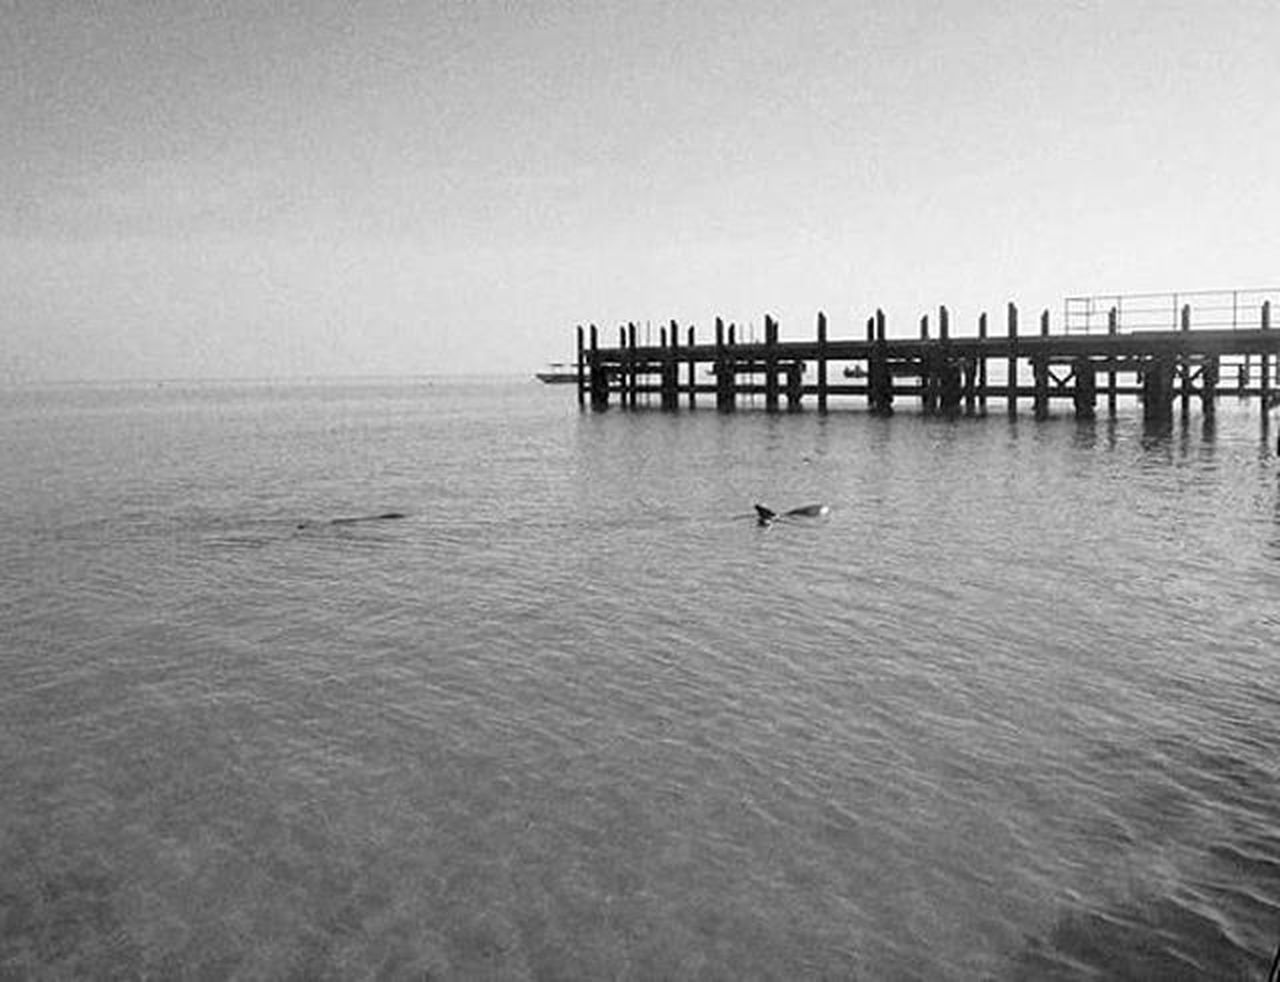 Monkeymia WesternAustralia Australia Mytravelgram Mytrip Backpacker Travelling Travel All_shots F4F Igersitalia Blackandwhite Monochrome Natgeotravel Nature Ocean Wild Dolphin Getty Natgeo Nationalgeographic Landscape Wonderfulplaces